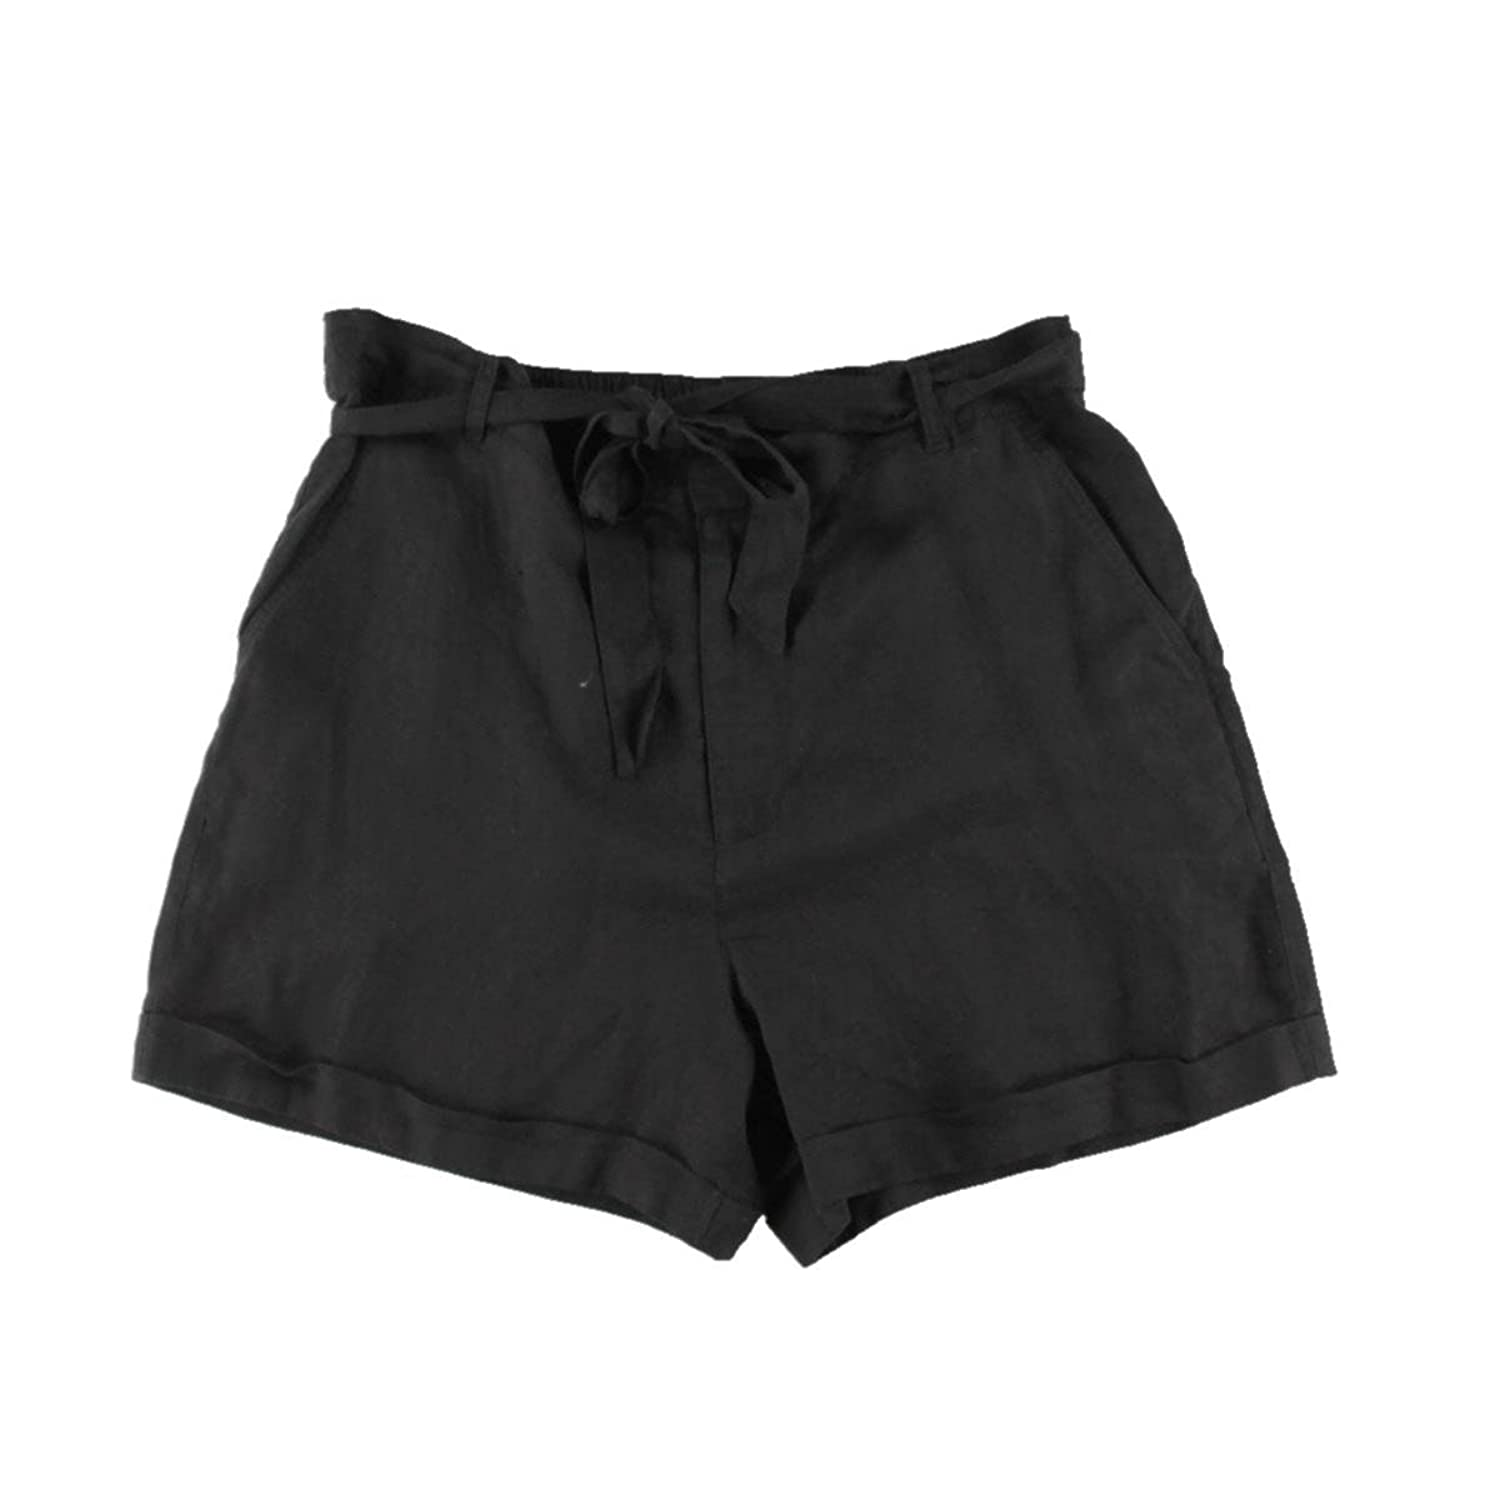 Pure DKNY Womens Linen Cuffed Casual Shorts